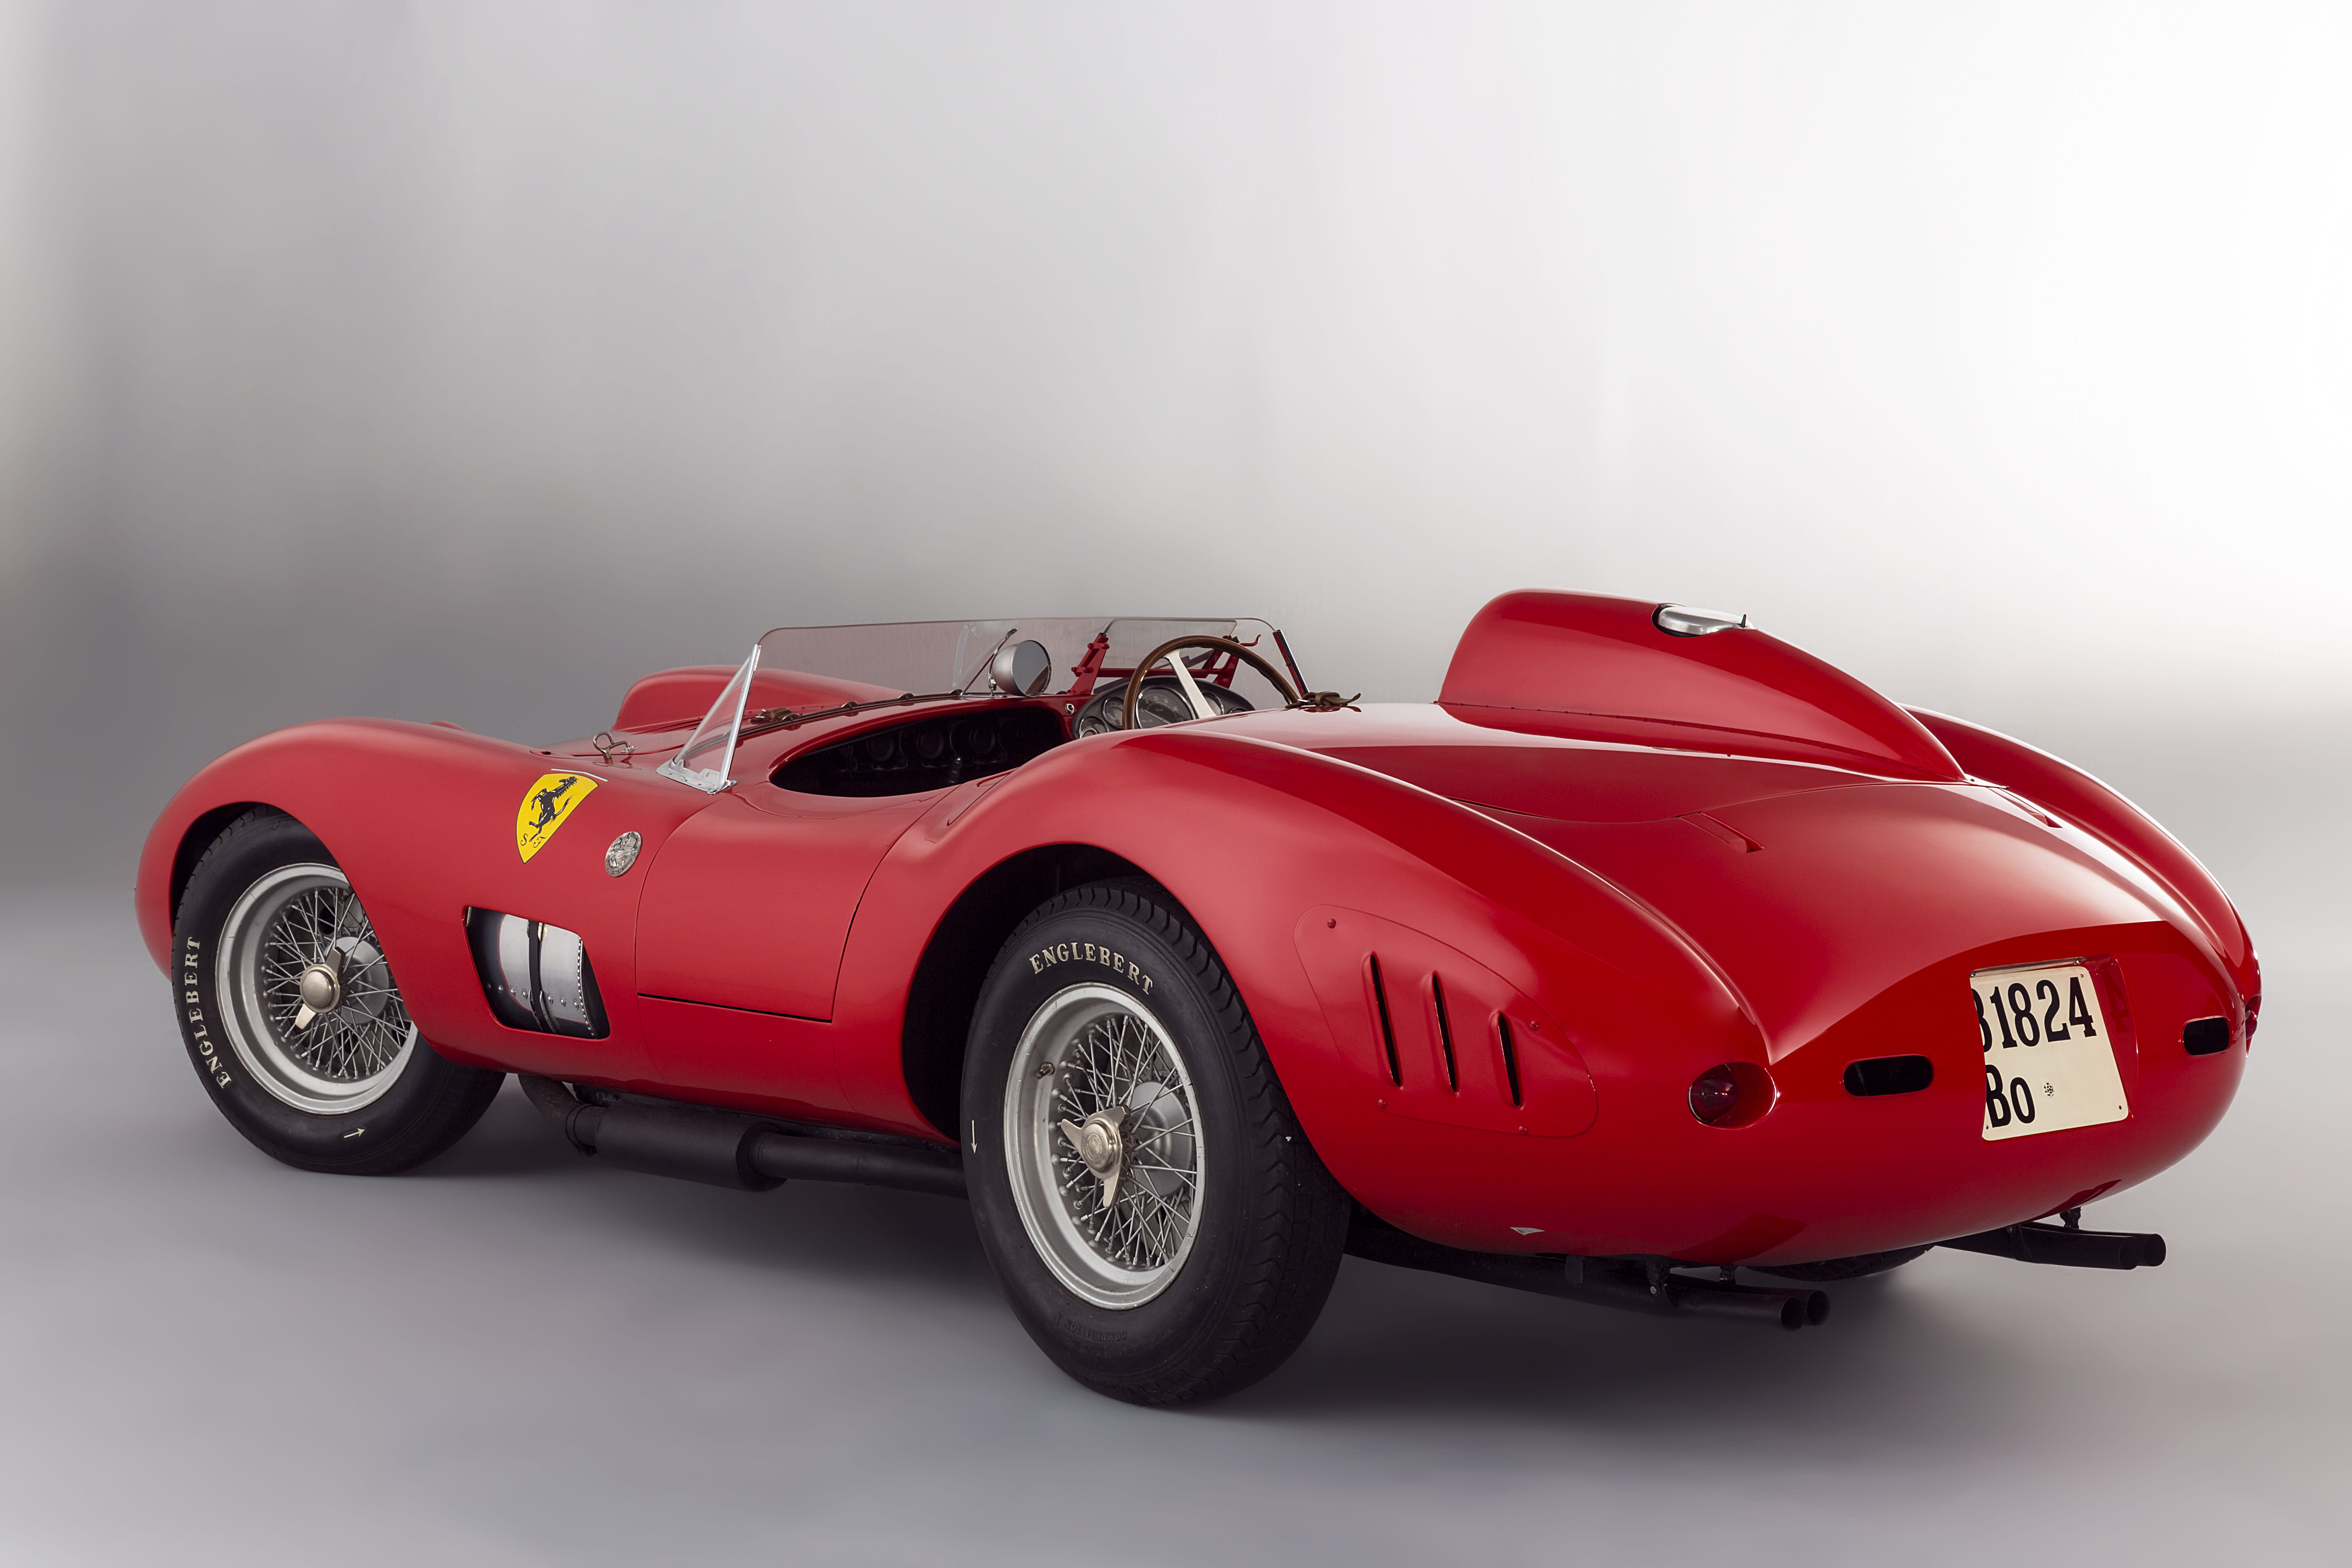 Stunning Ferrari race car sells for $35.7 million, just short of world record price